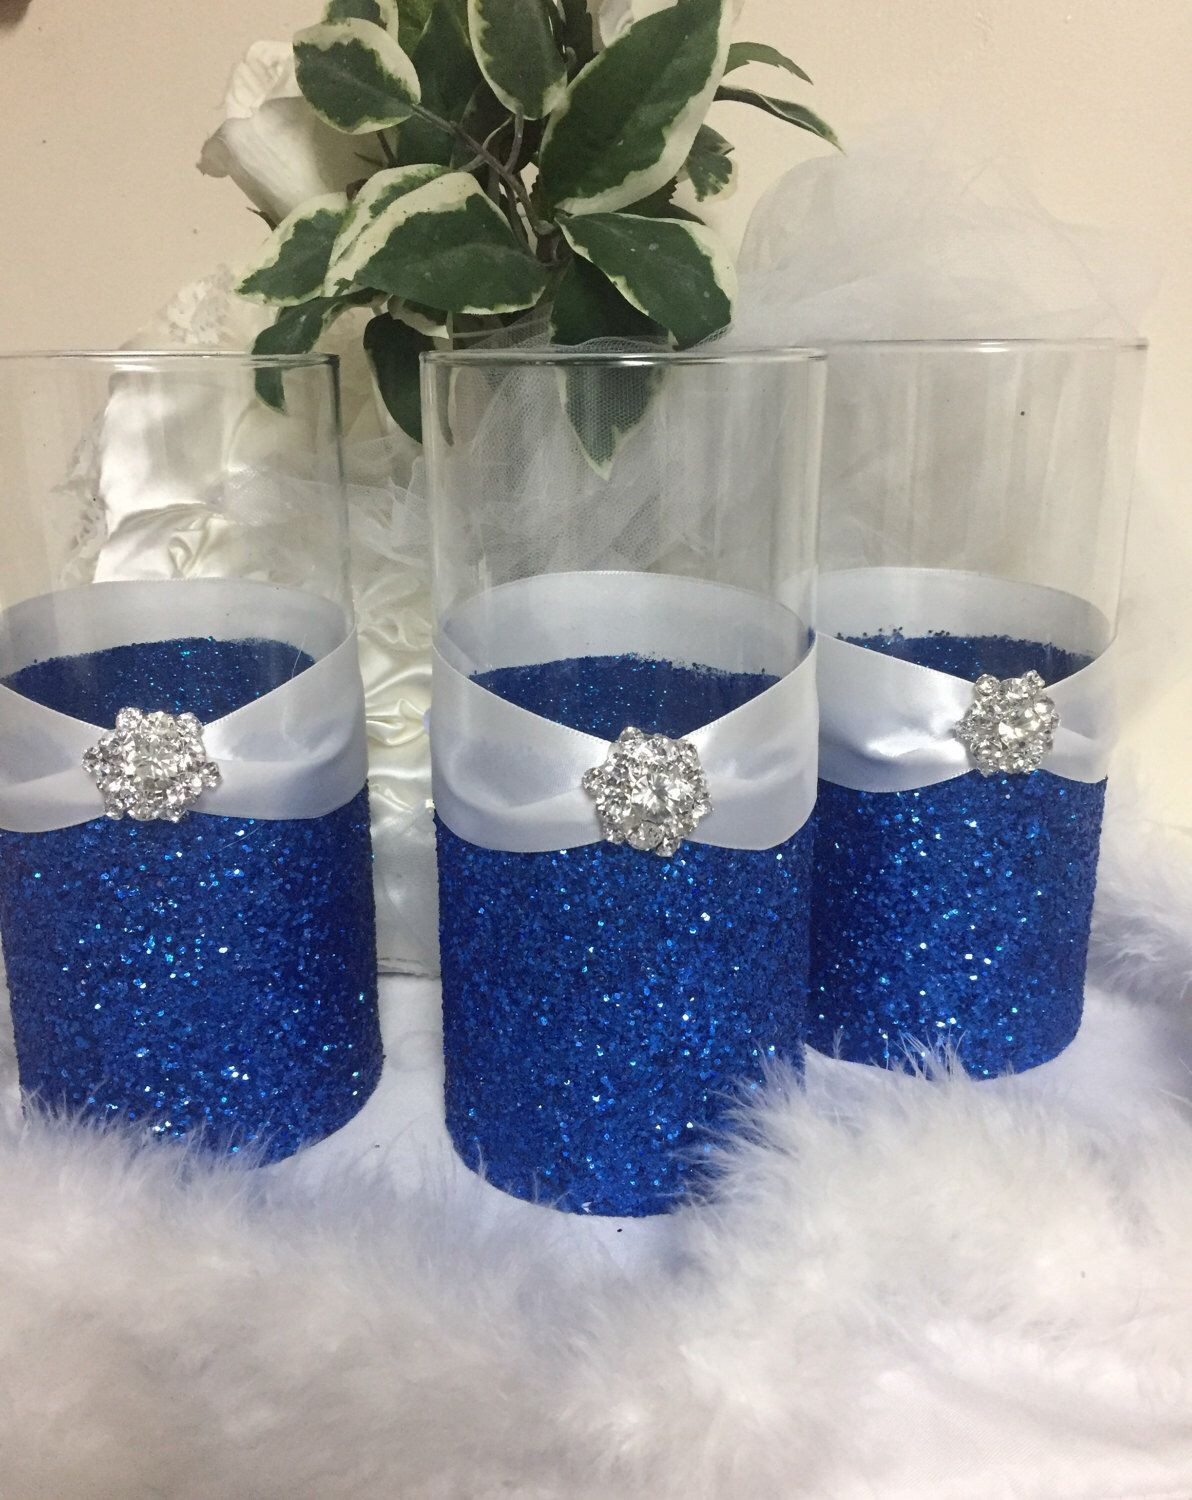 royal doulton vase of royal blue vases photograph wedding centerpiece glitter vase bridal for gallery of royal blue vases